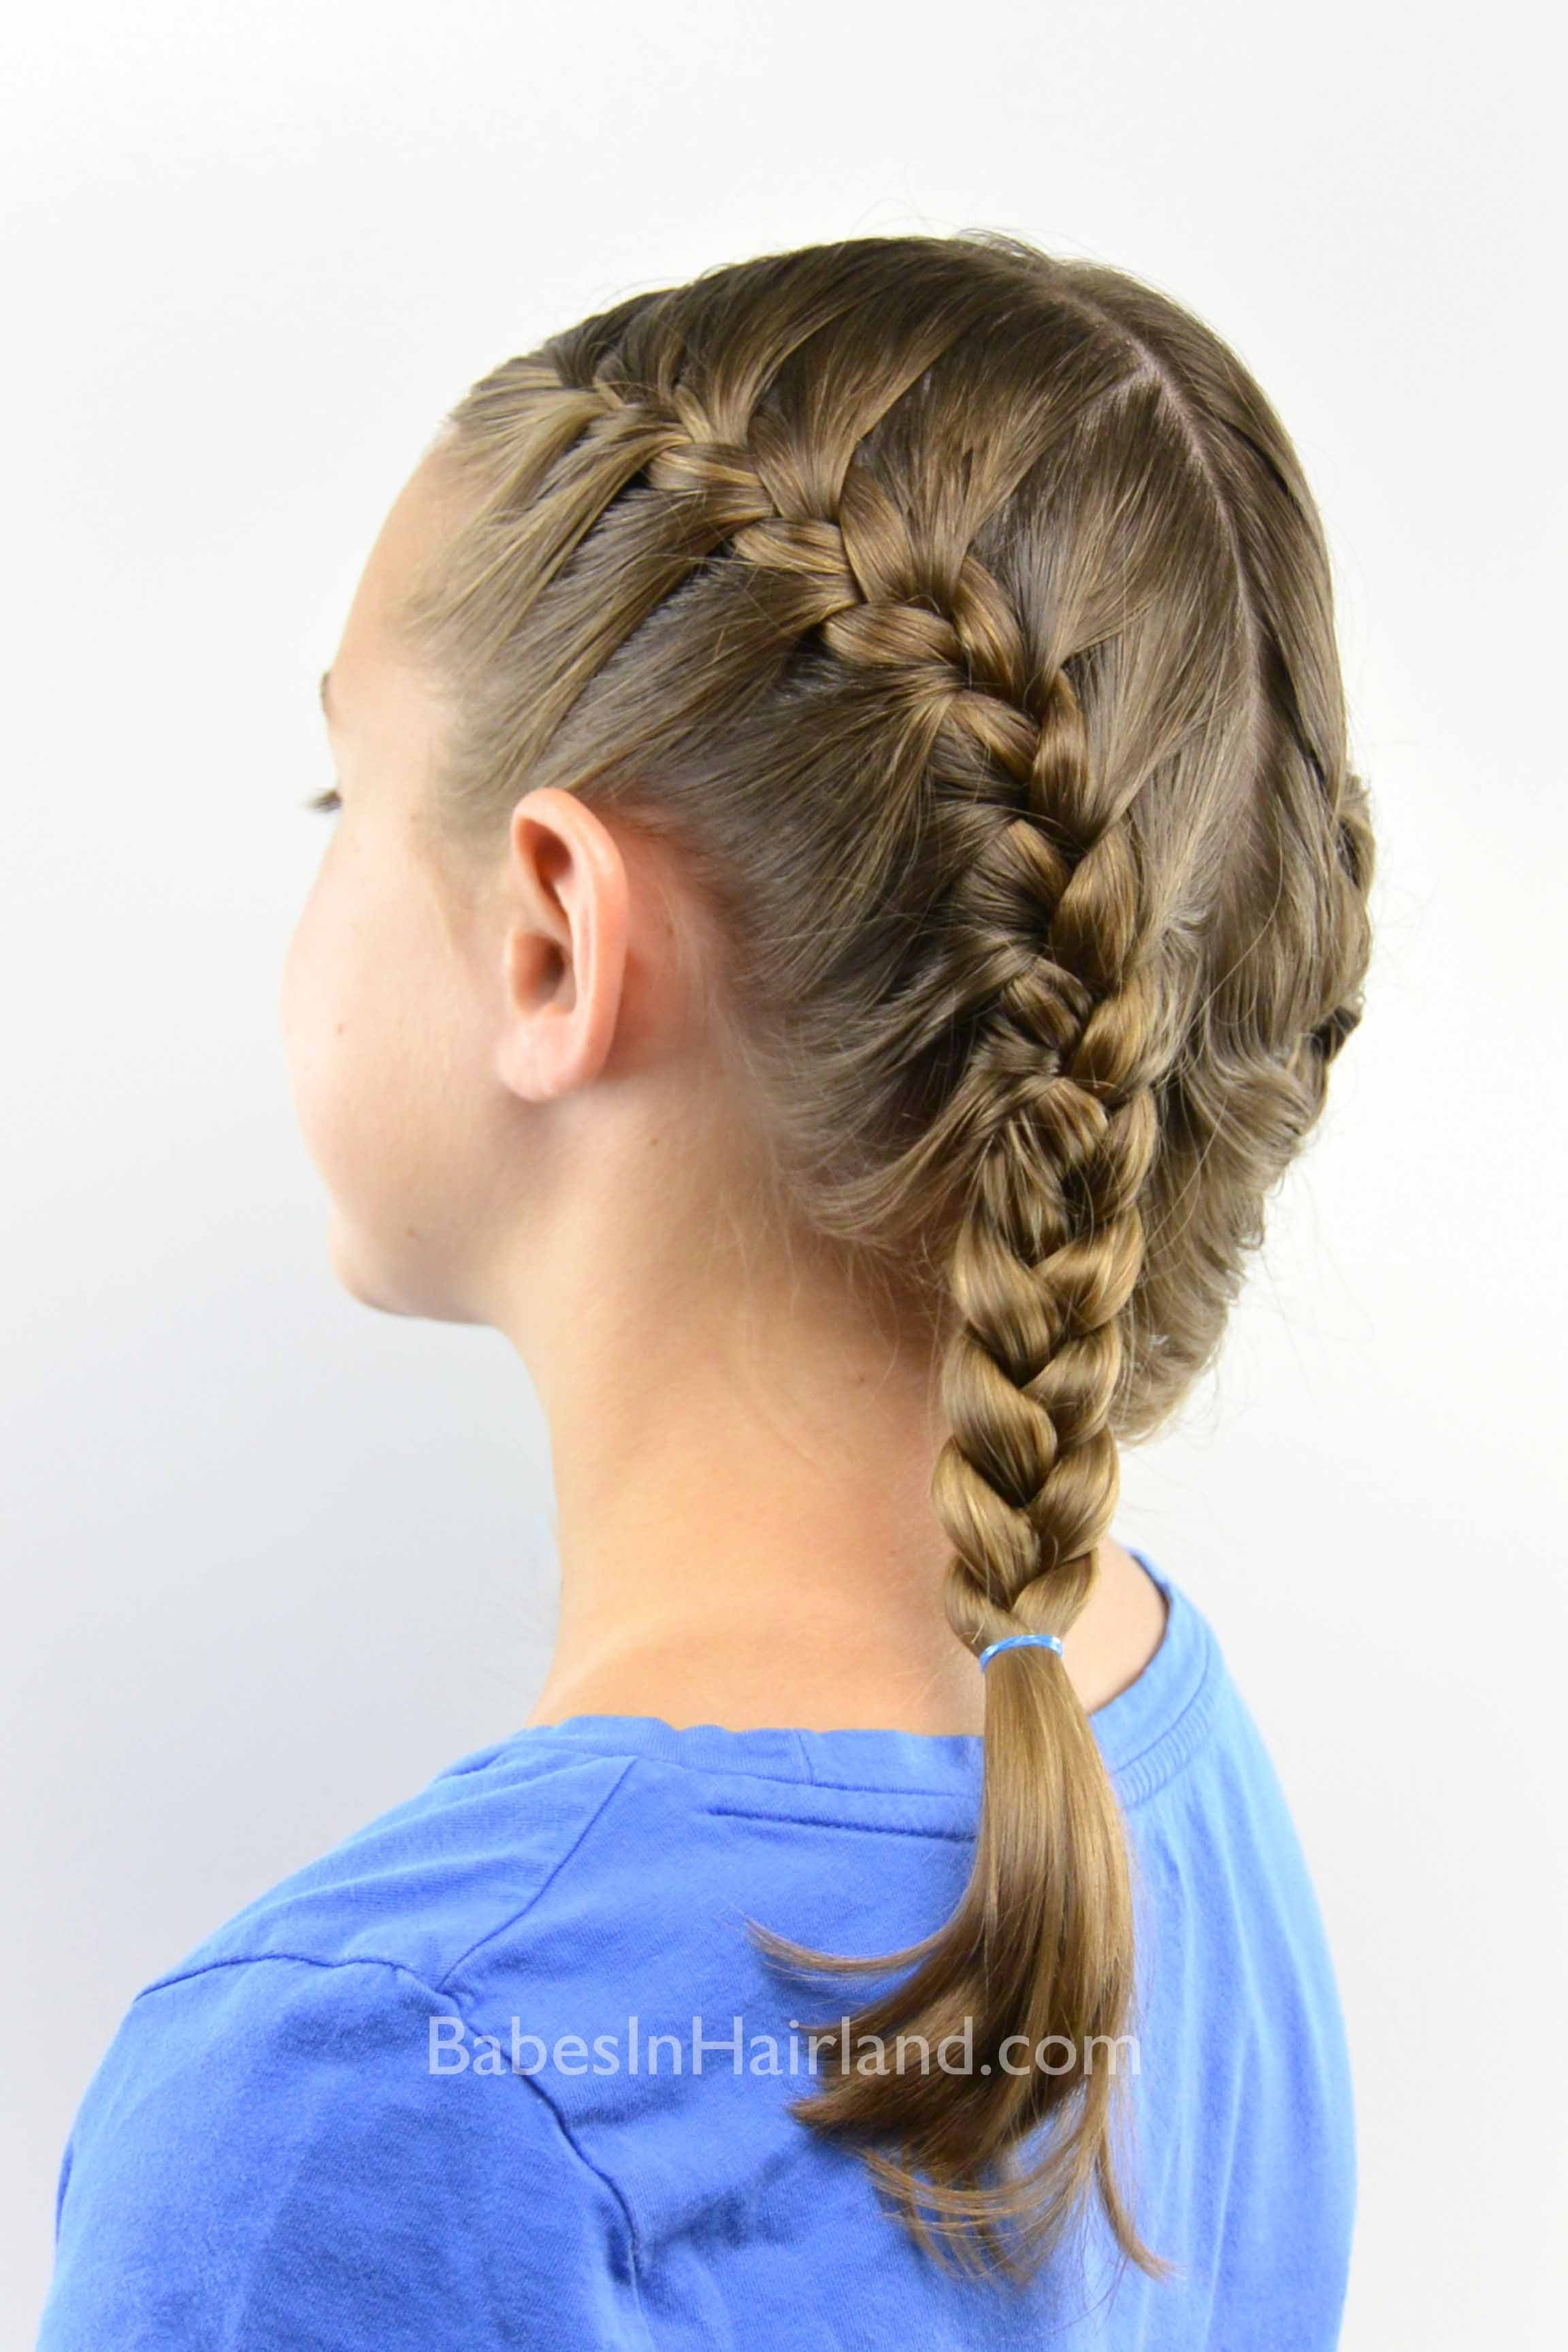 New How To Get A Tight French Braid B*B*S In Hairland Ideas With Pictures